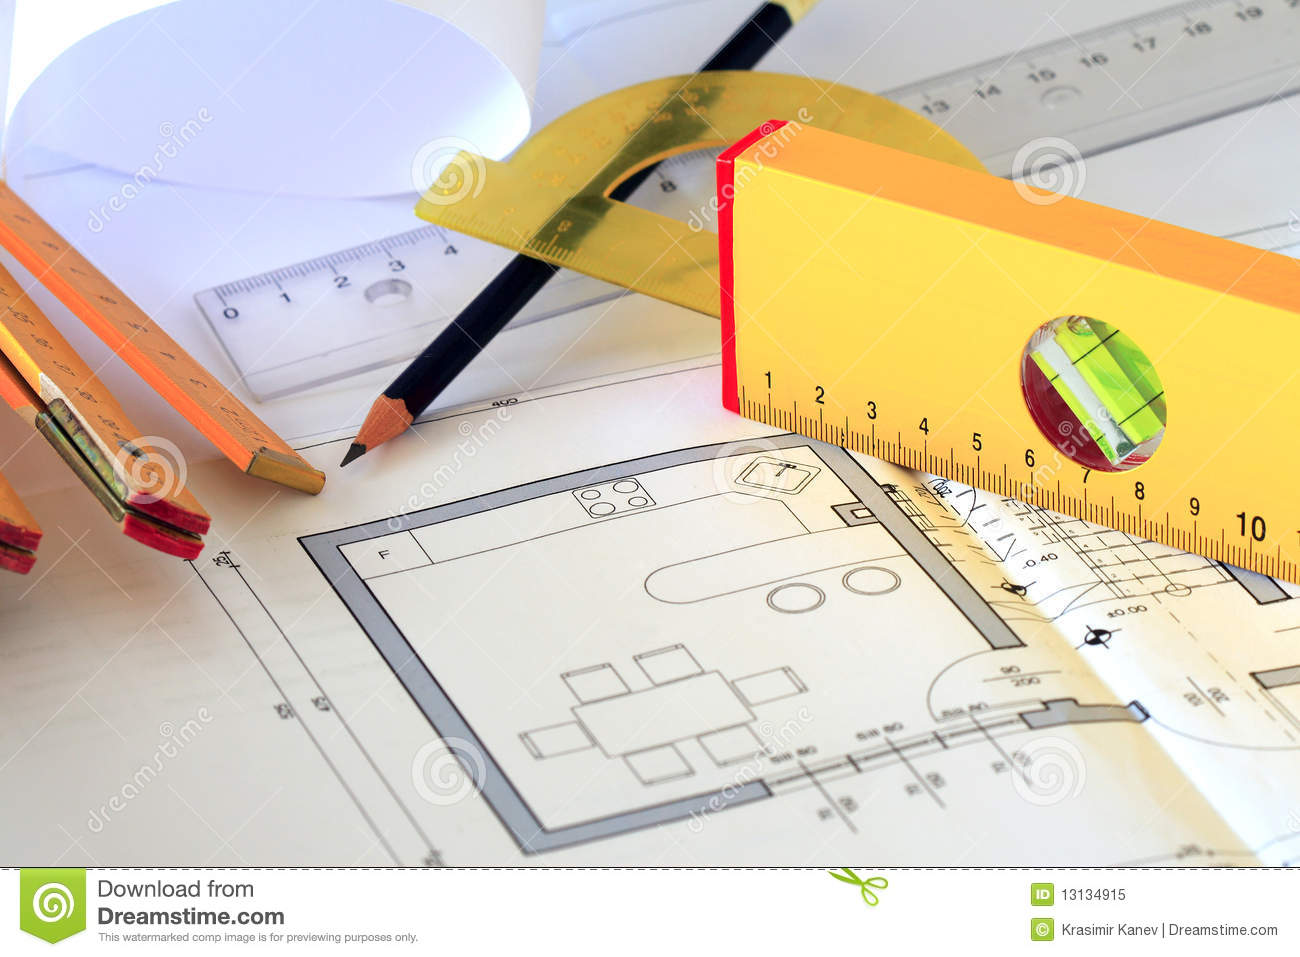 Architectural drawings and tools stock image image 13134915 for Online architecture design tool